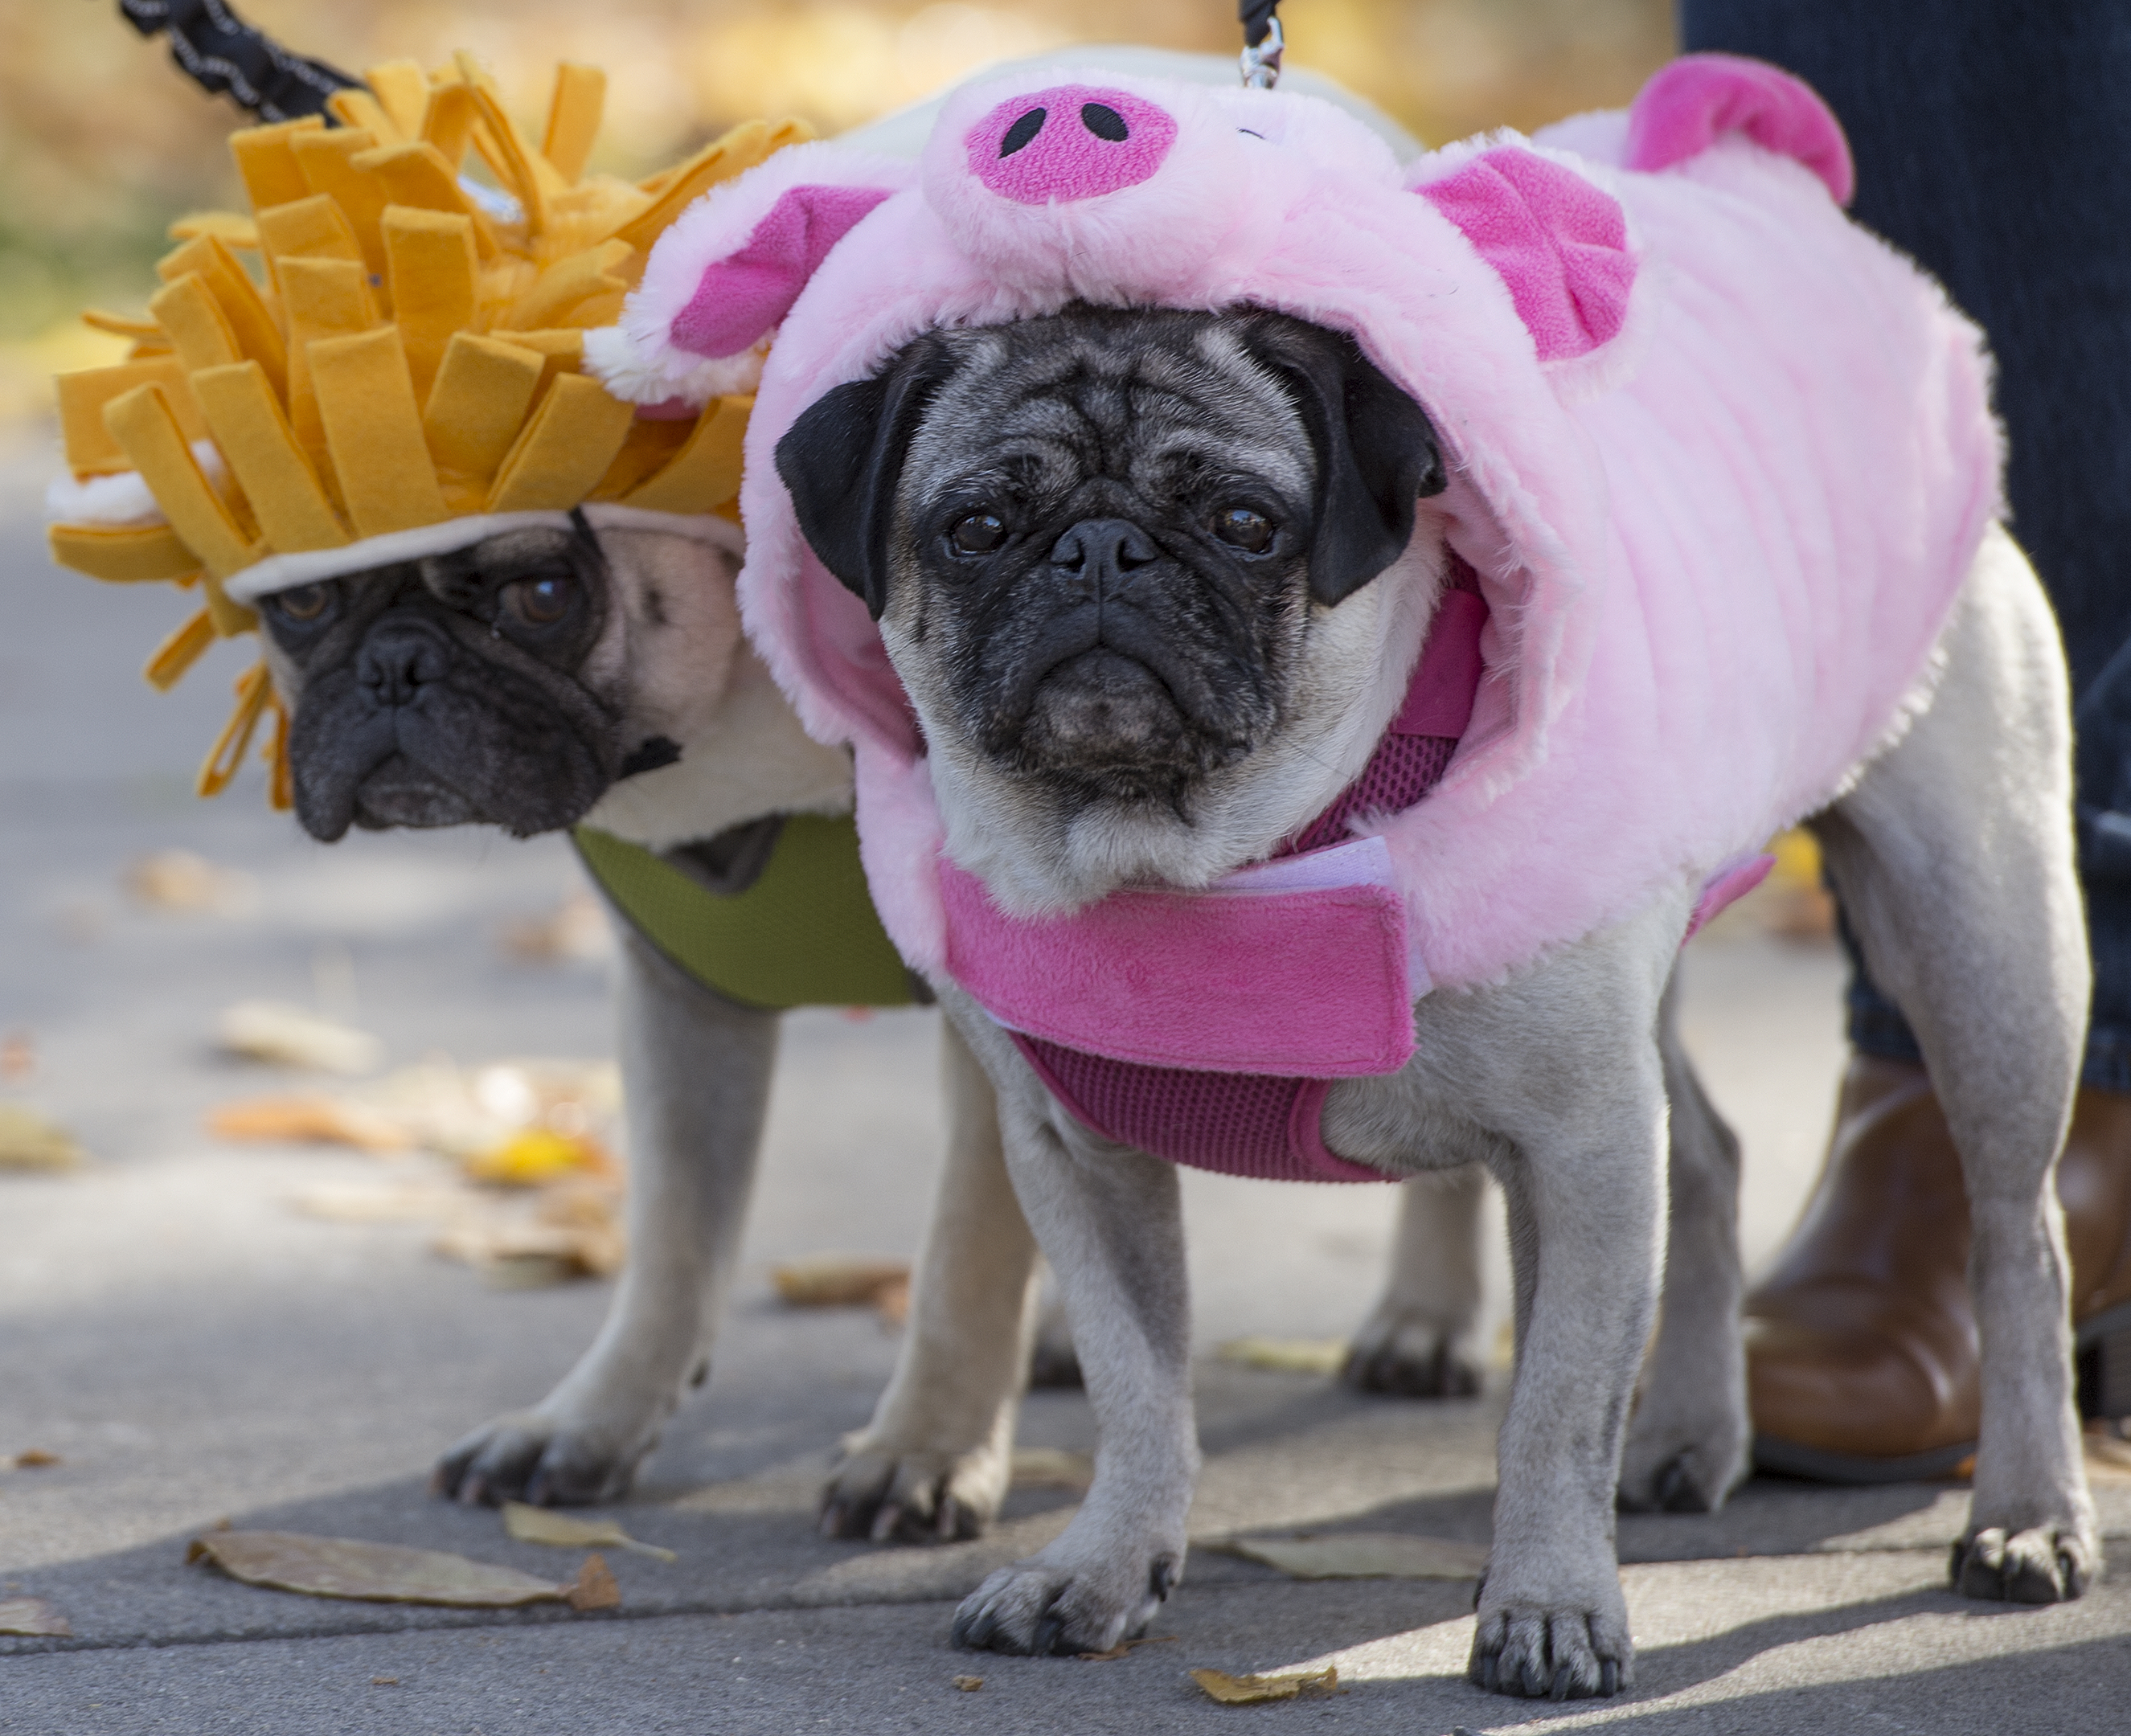 Downtown Farmers Market ends Saturday with a Howl-o-ween costume contest for pets, pumpkin decorating for kids and fall vegetables for everyone